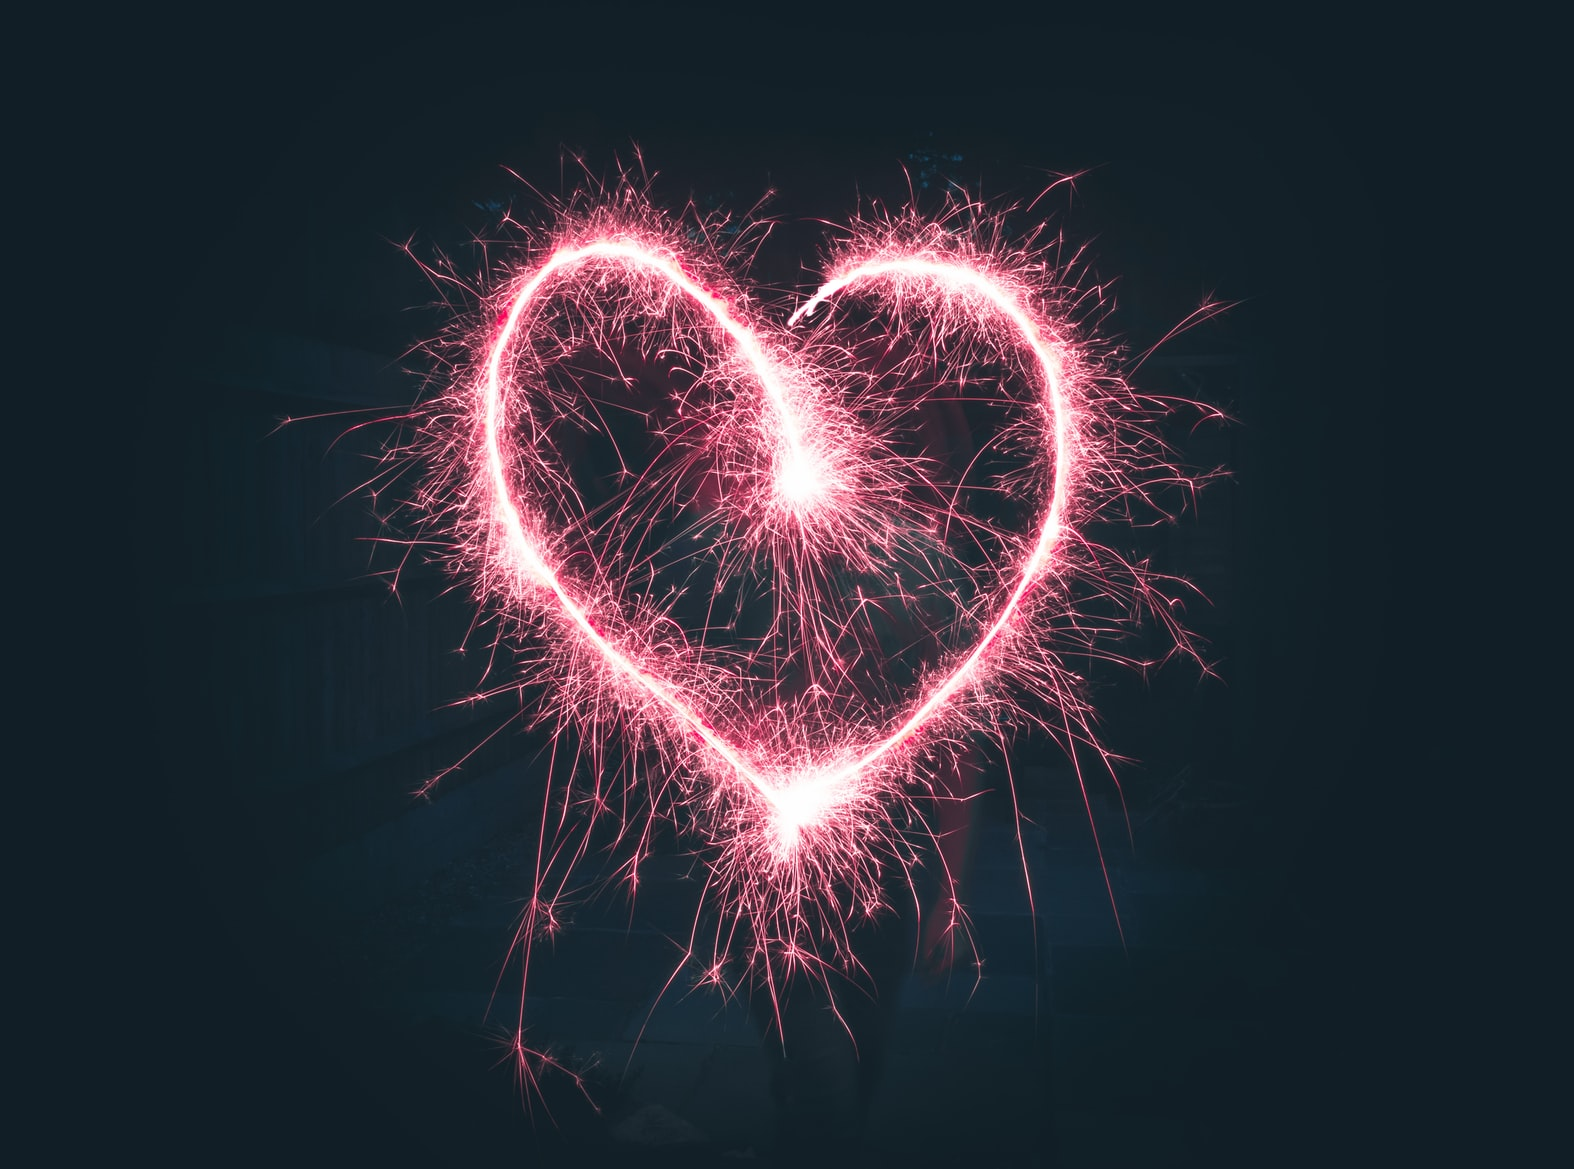 Pink heart-shaped sparklers on dark background